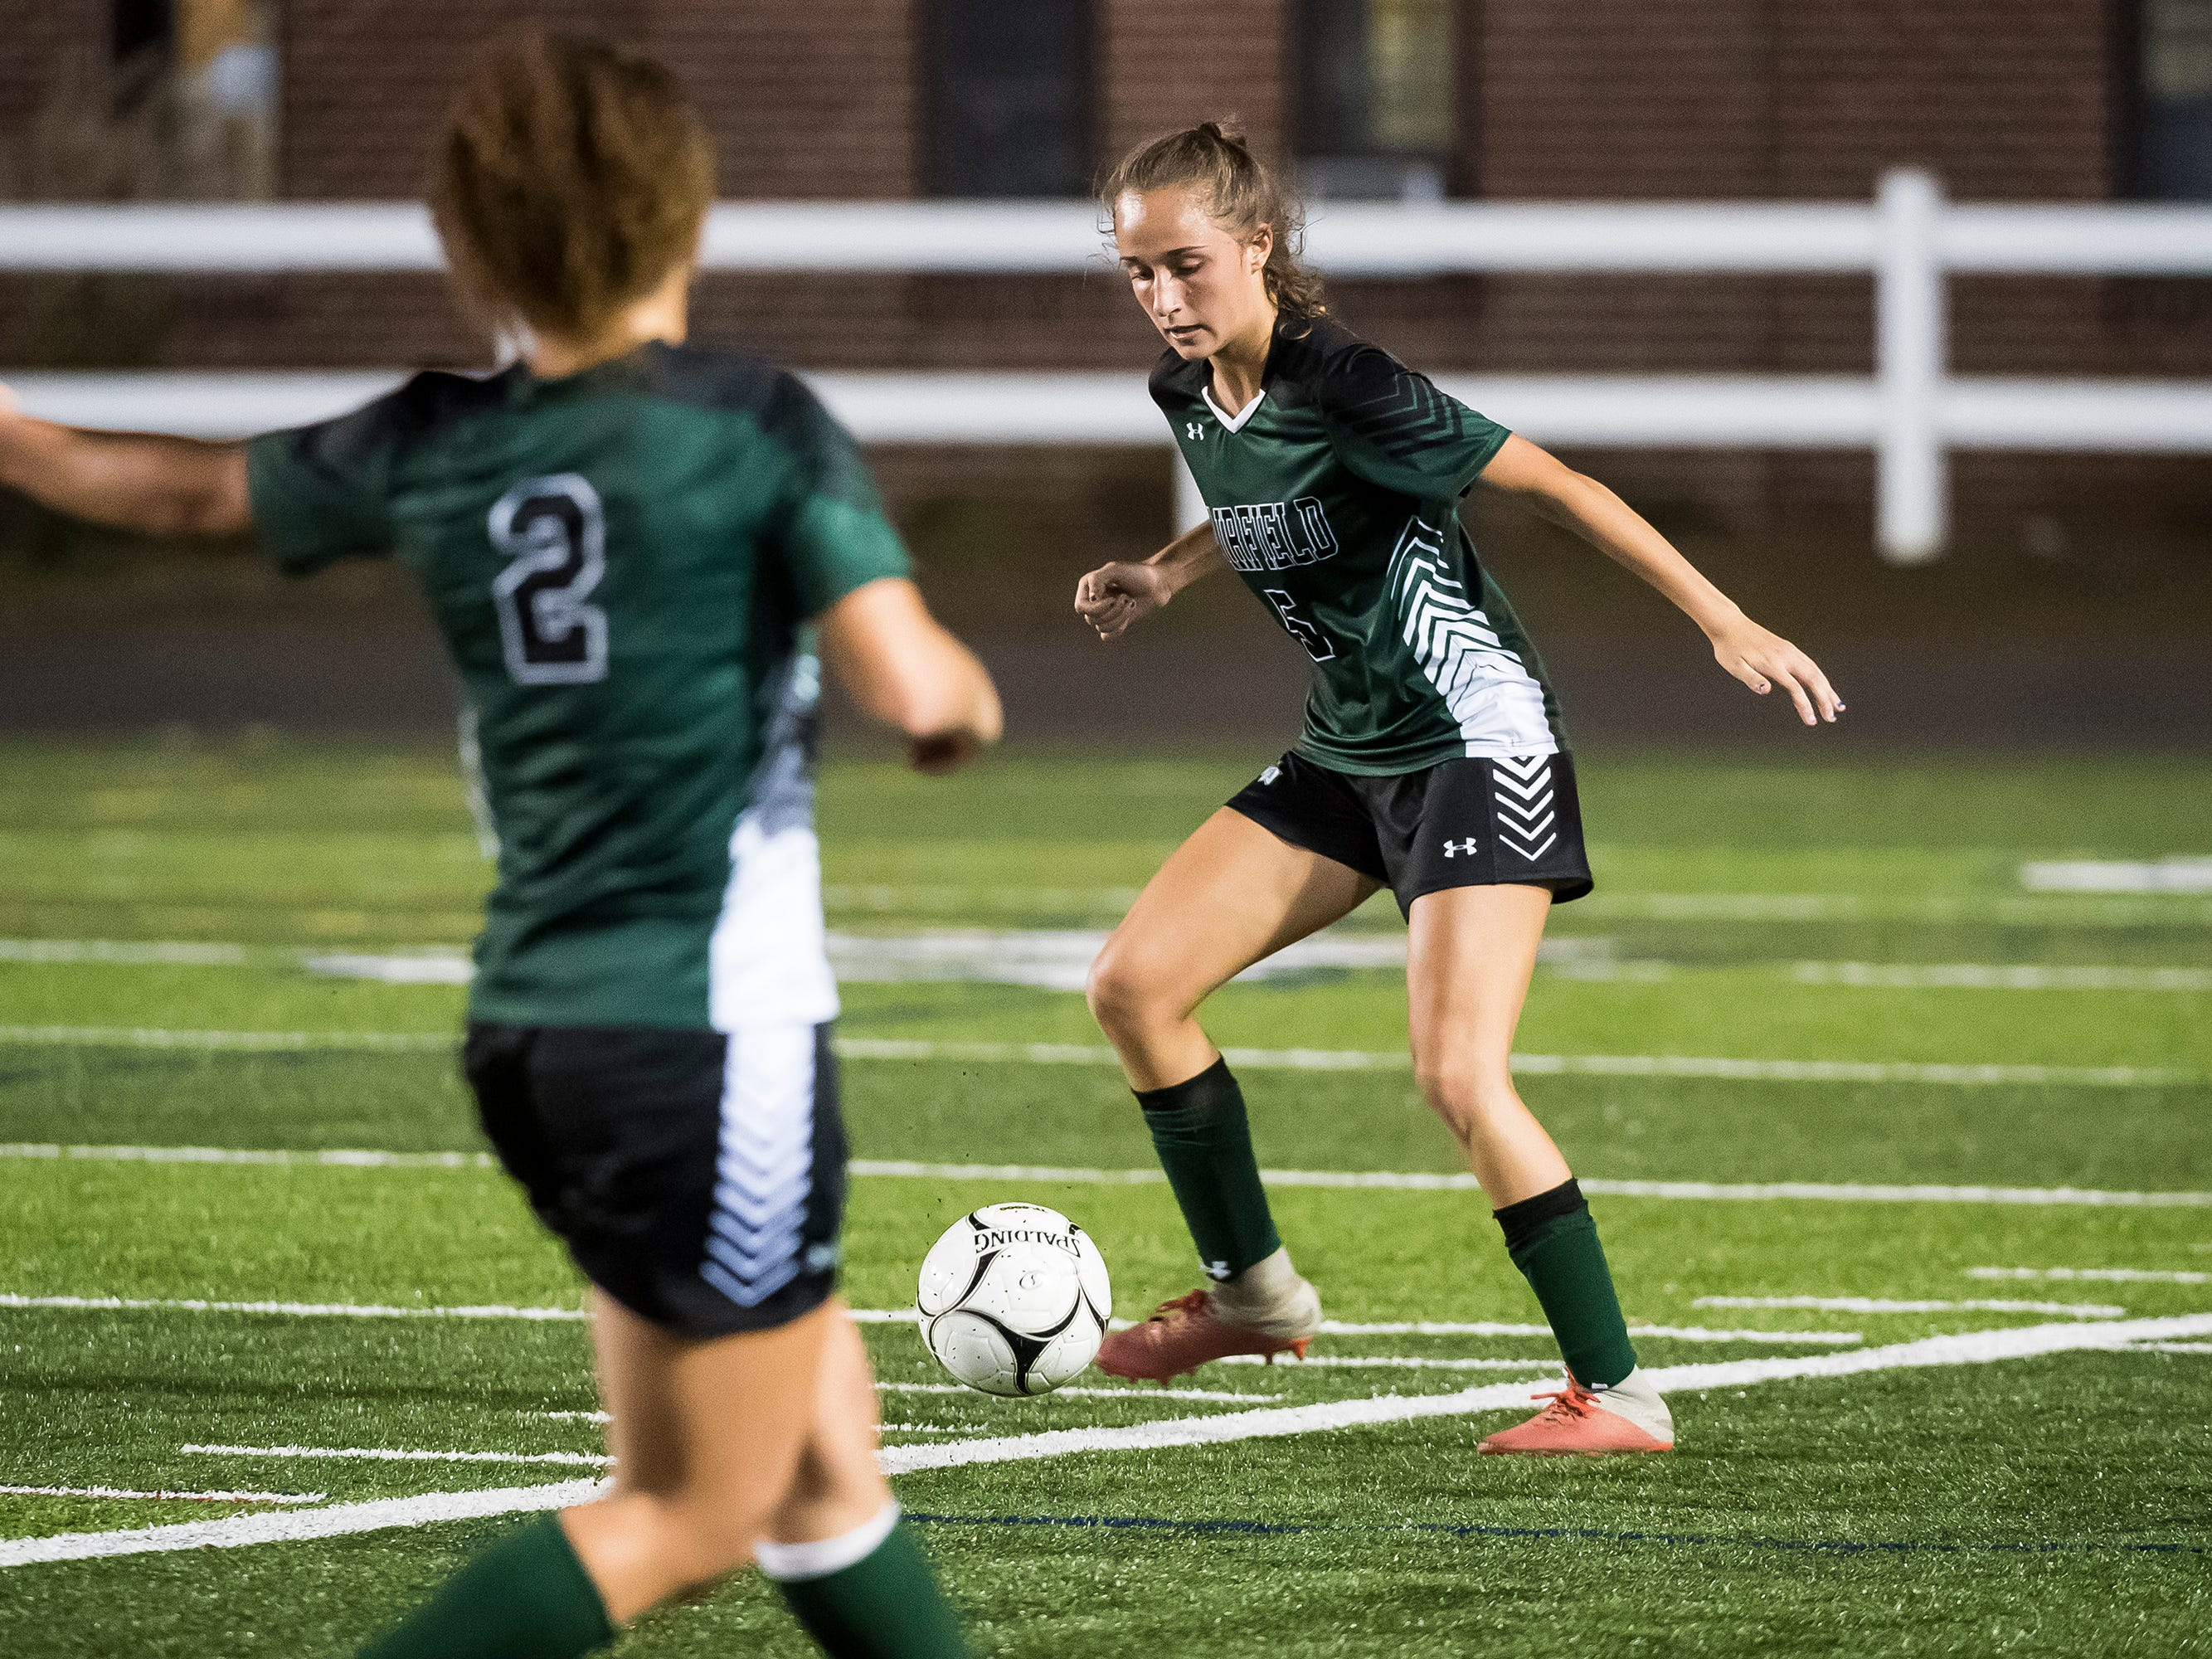 Fairfield's Rio Strosnider controls the ball during the PIAA District III Class A championship game against Camp Hill at Hershey Park Stadium on Wednesday, October 31, 2018. The Knights fell 1-0.